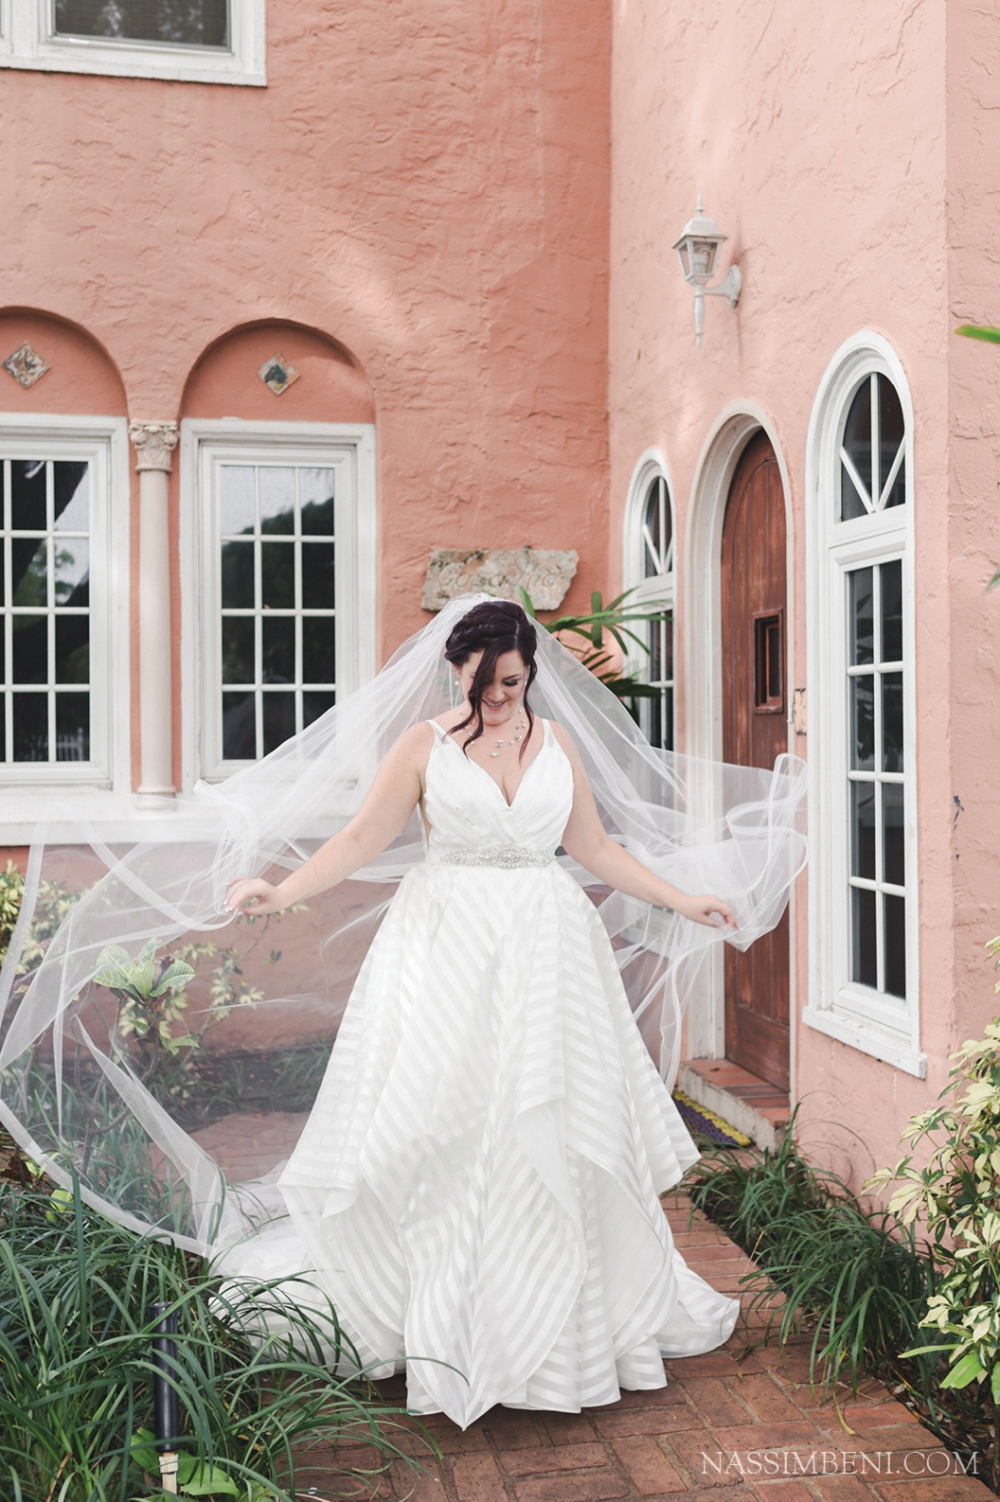 airbnd bridal prep location - palm beach florida destination wedding